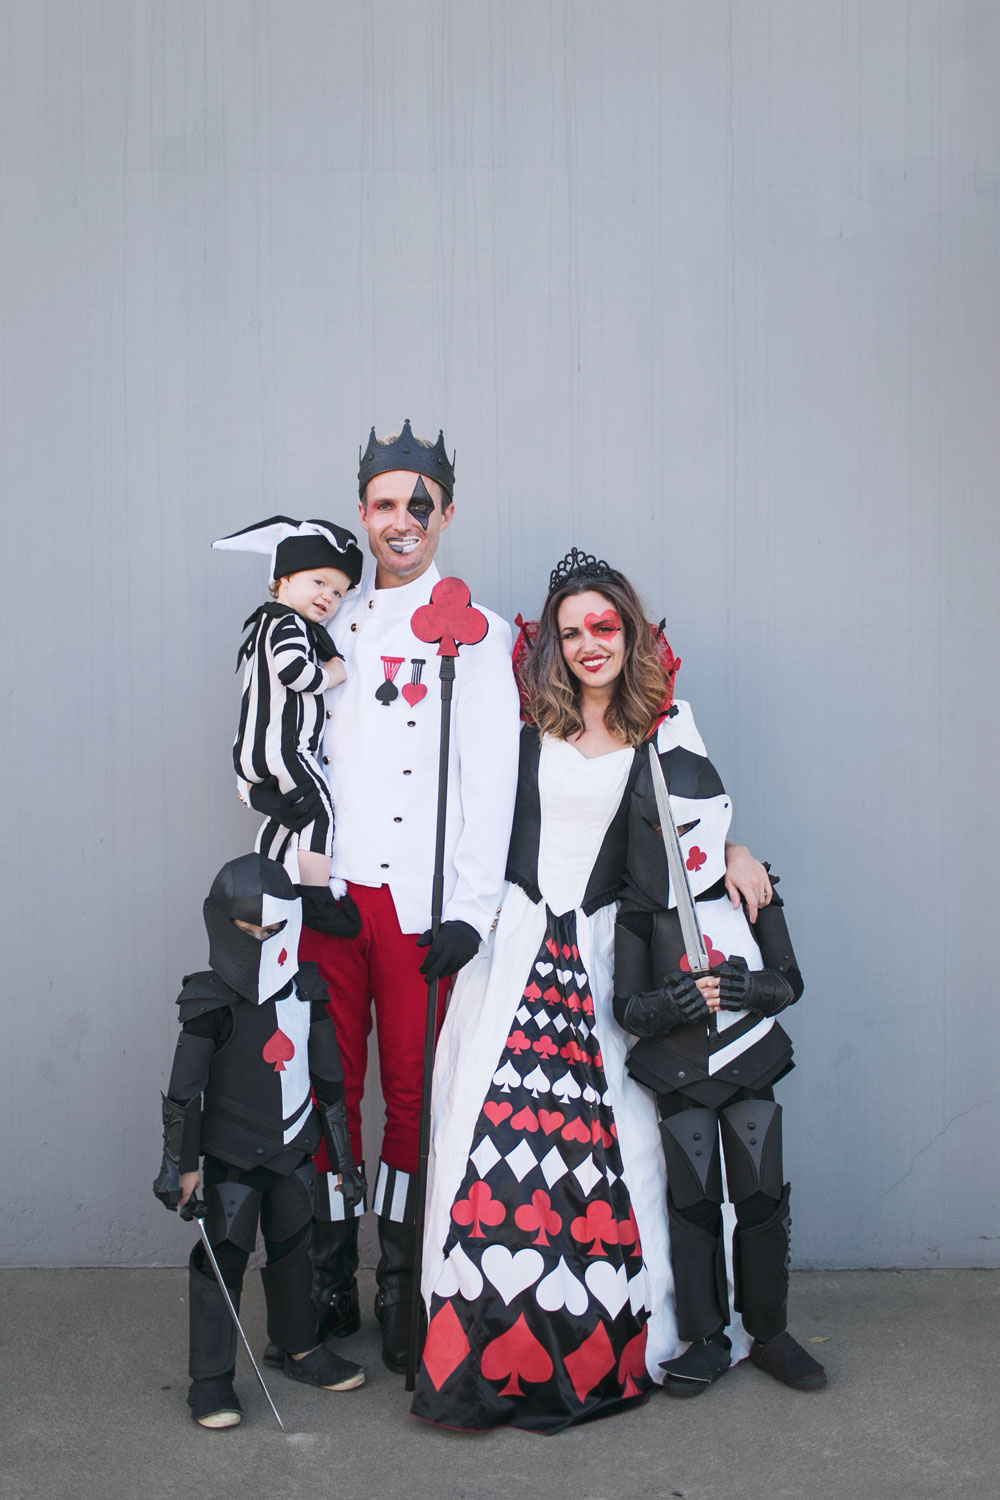 This Queen of Hearts family costume idea is sure to be a hit this Halloween. Learn how to create your own! #halloweencostumes #familyhalloweencostumes #queenofhearts #familycostumeideas